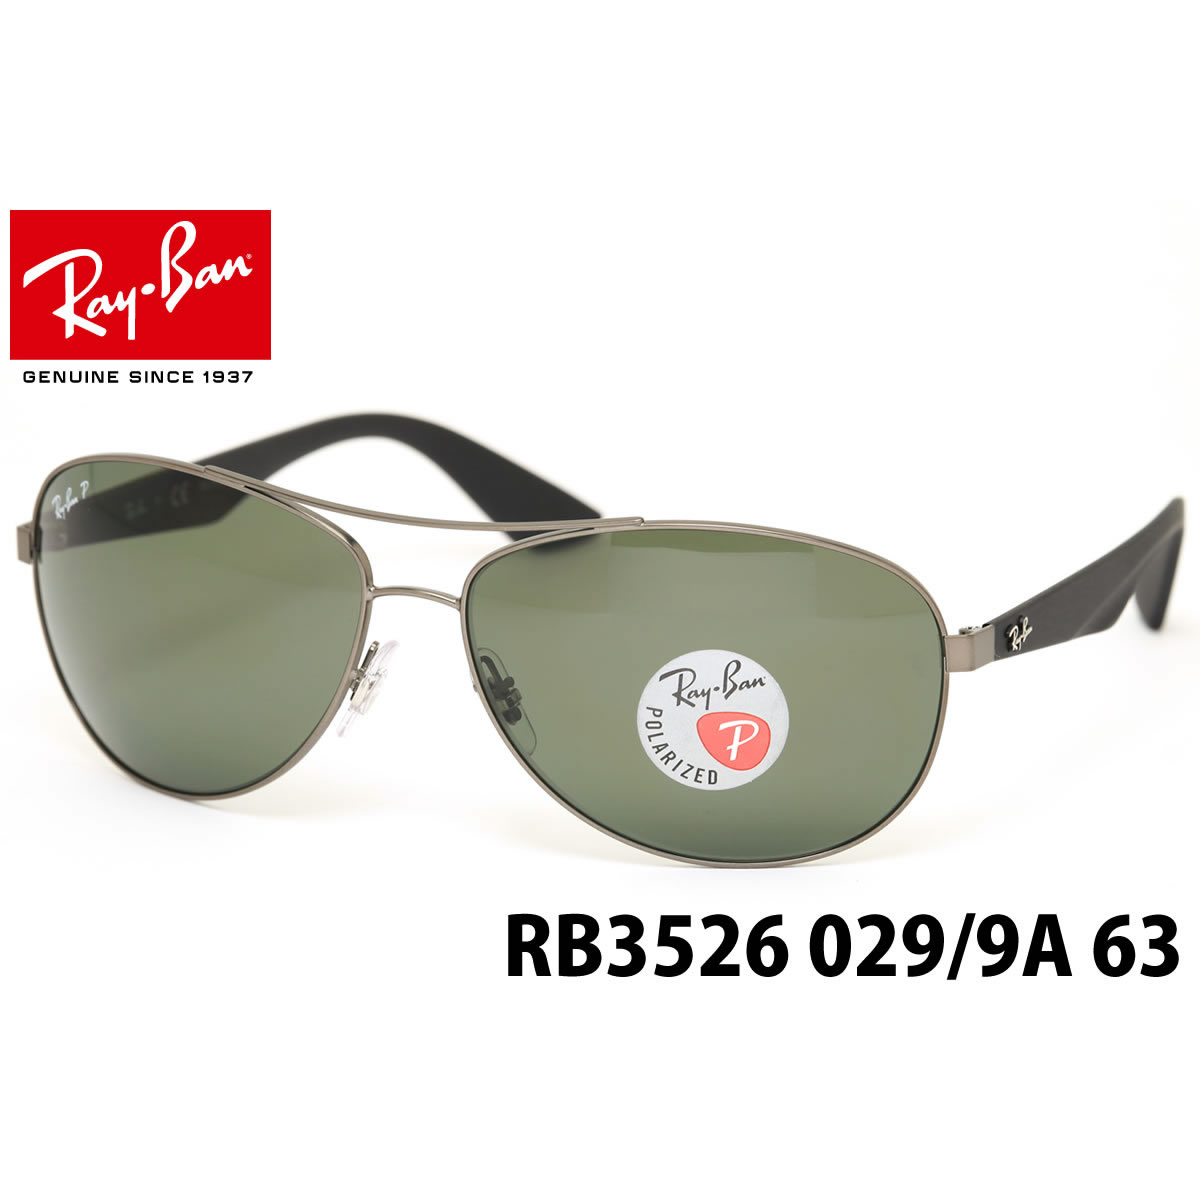 e461c93fce Optical Shop Thats  Ray-Ban Sunglasses RB3526 029 9A 63size GENUINE ...